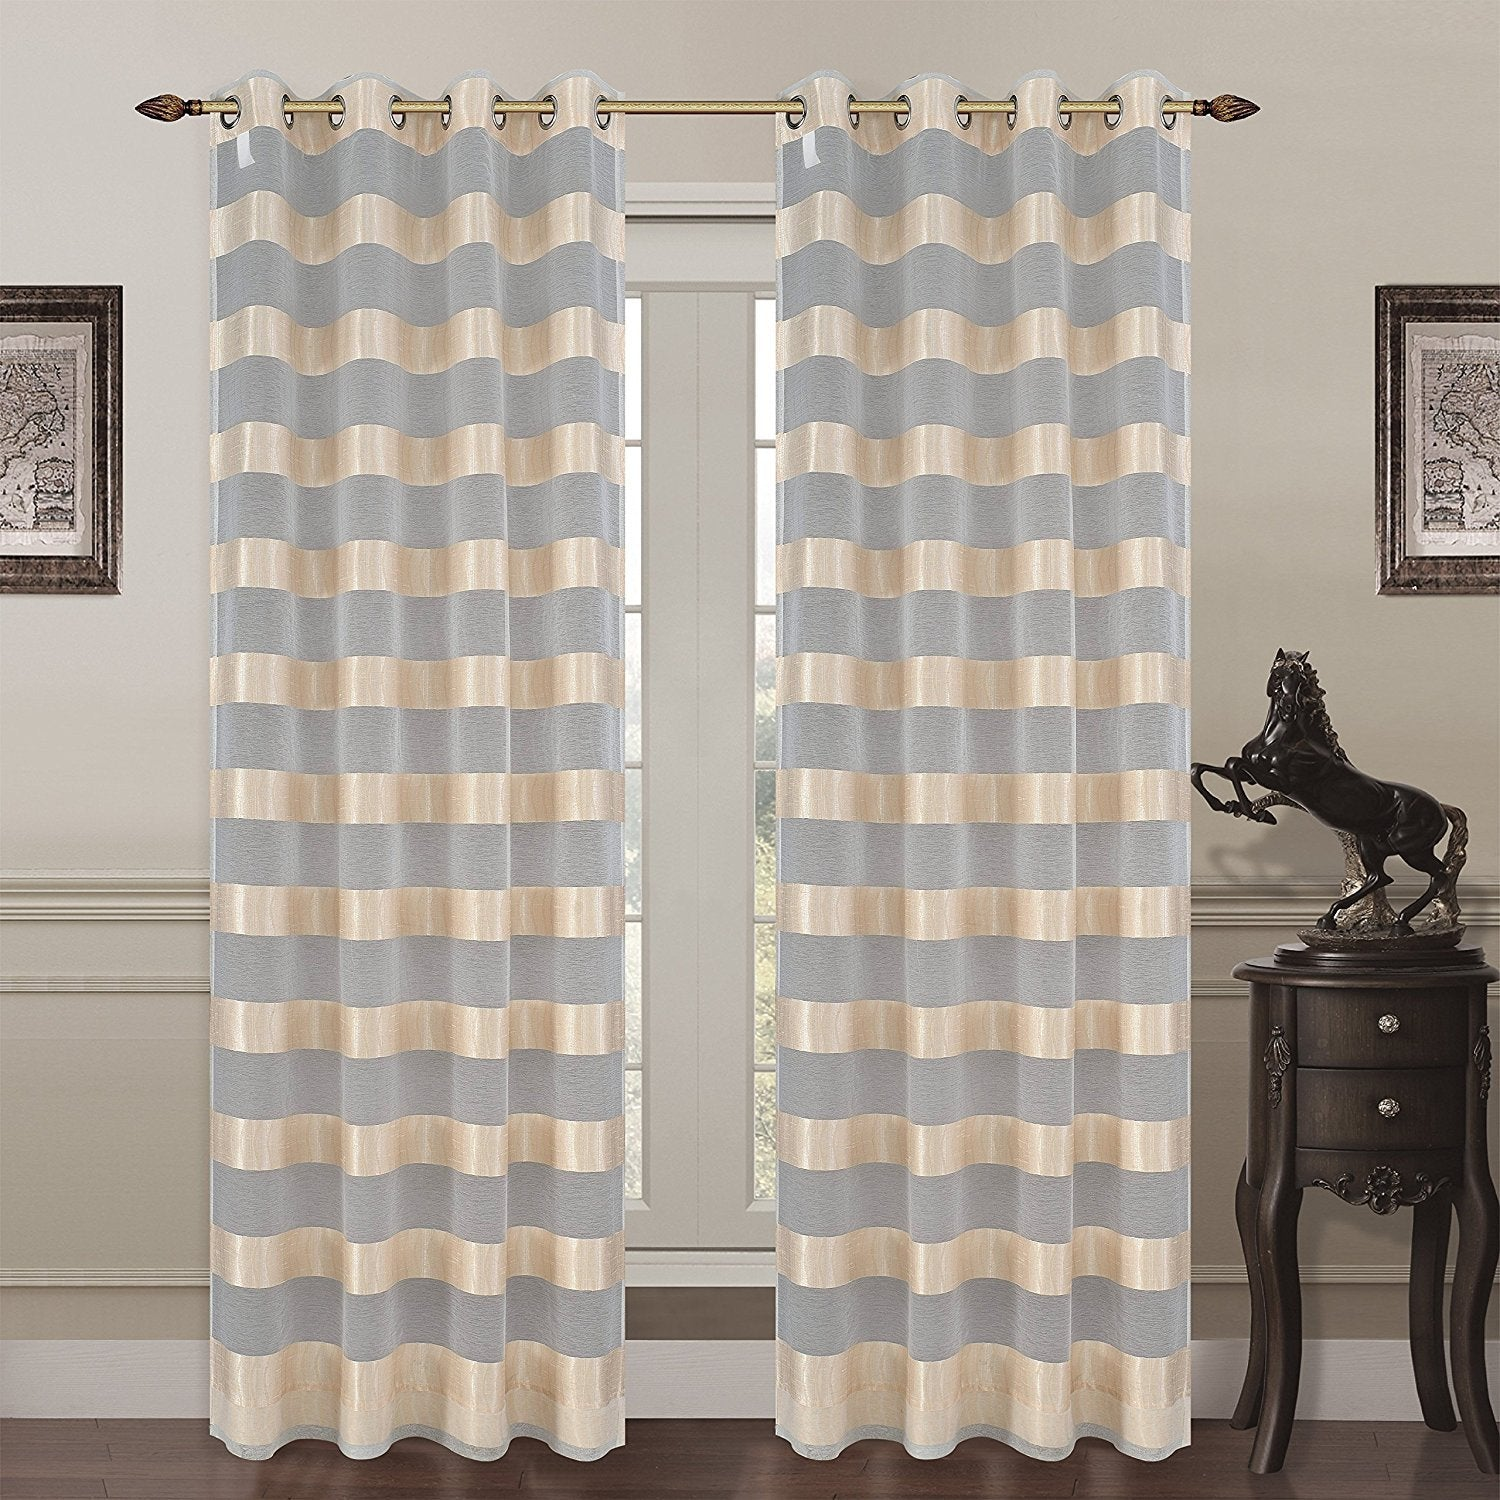 Monica Set of 2 Sheer Curtain Panels with Grommets - 3 Colors